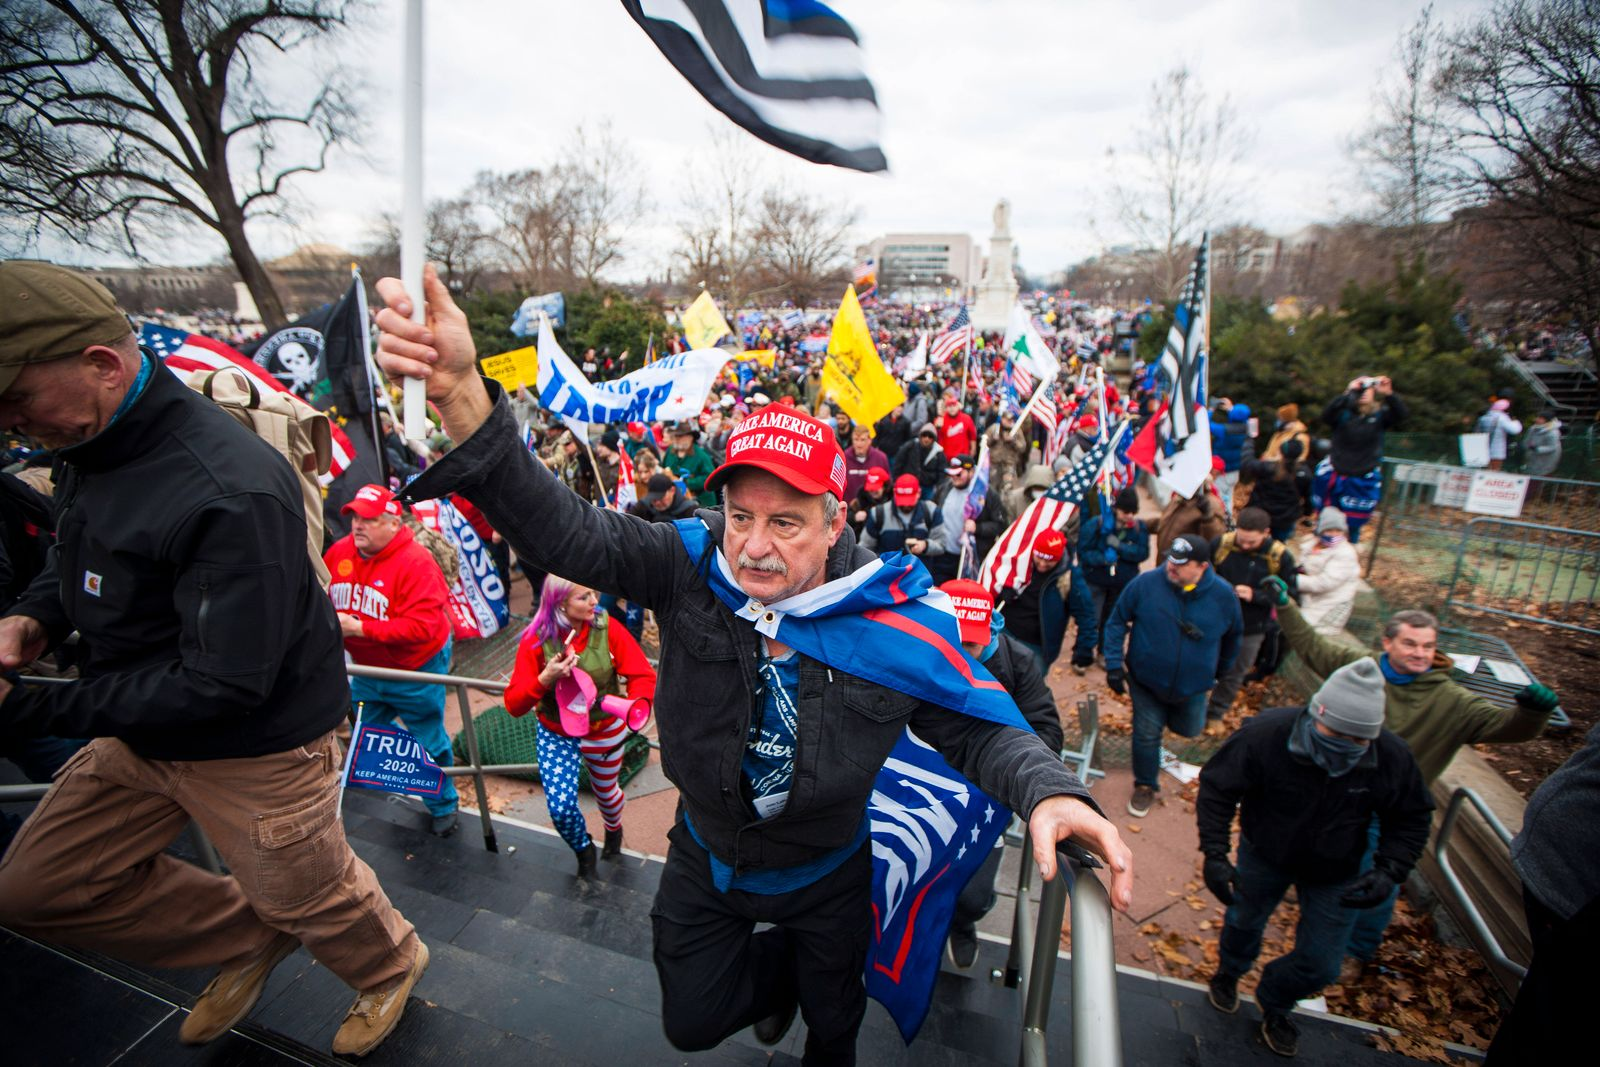 January 6, 2021, Washington Dc, USA: Trump supporters storm the grounds of the US Capitol Building on Wednesday Jan. 6,